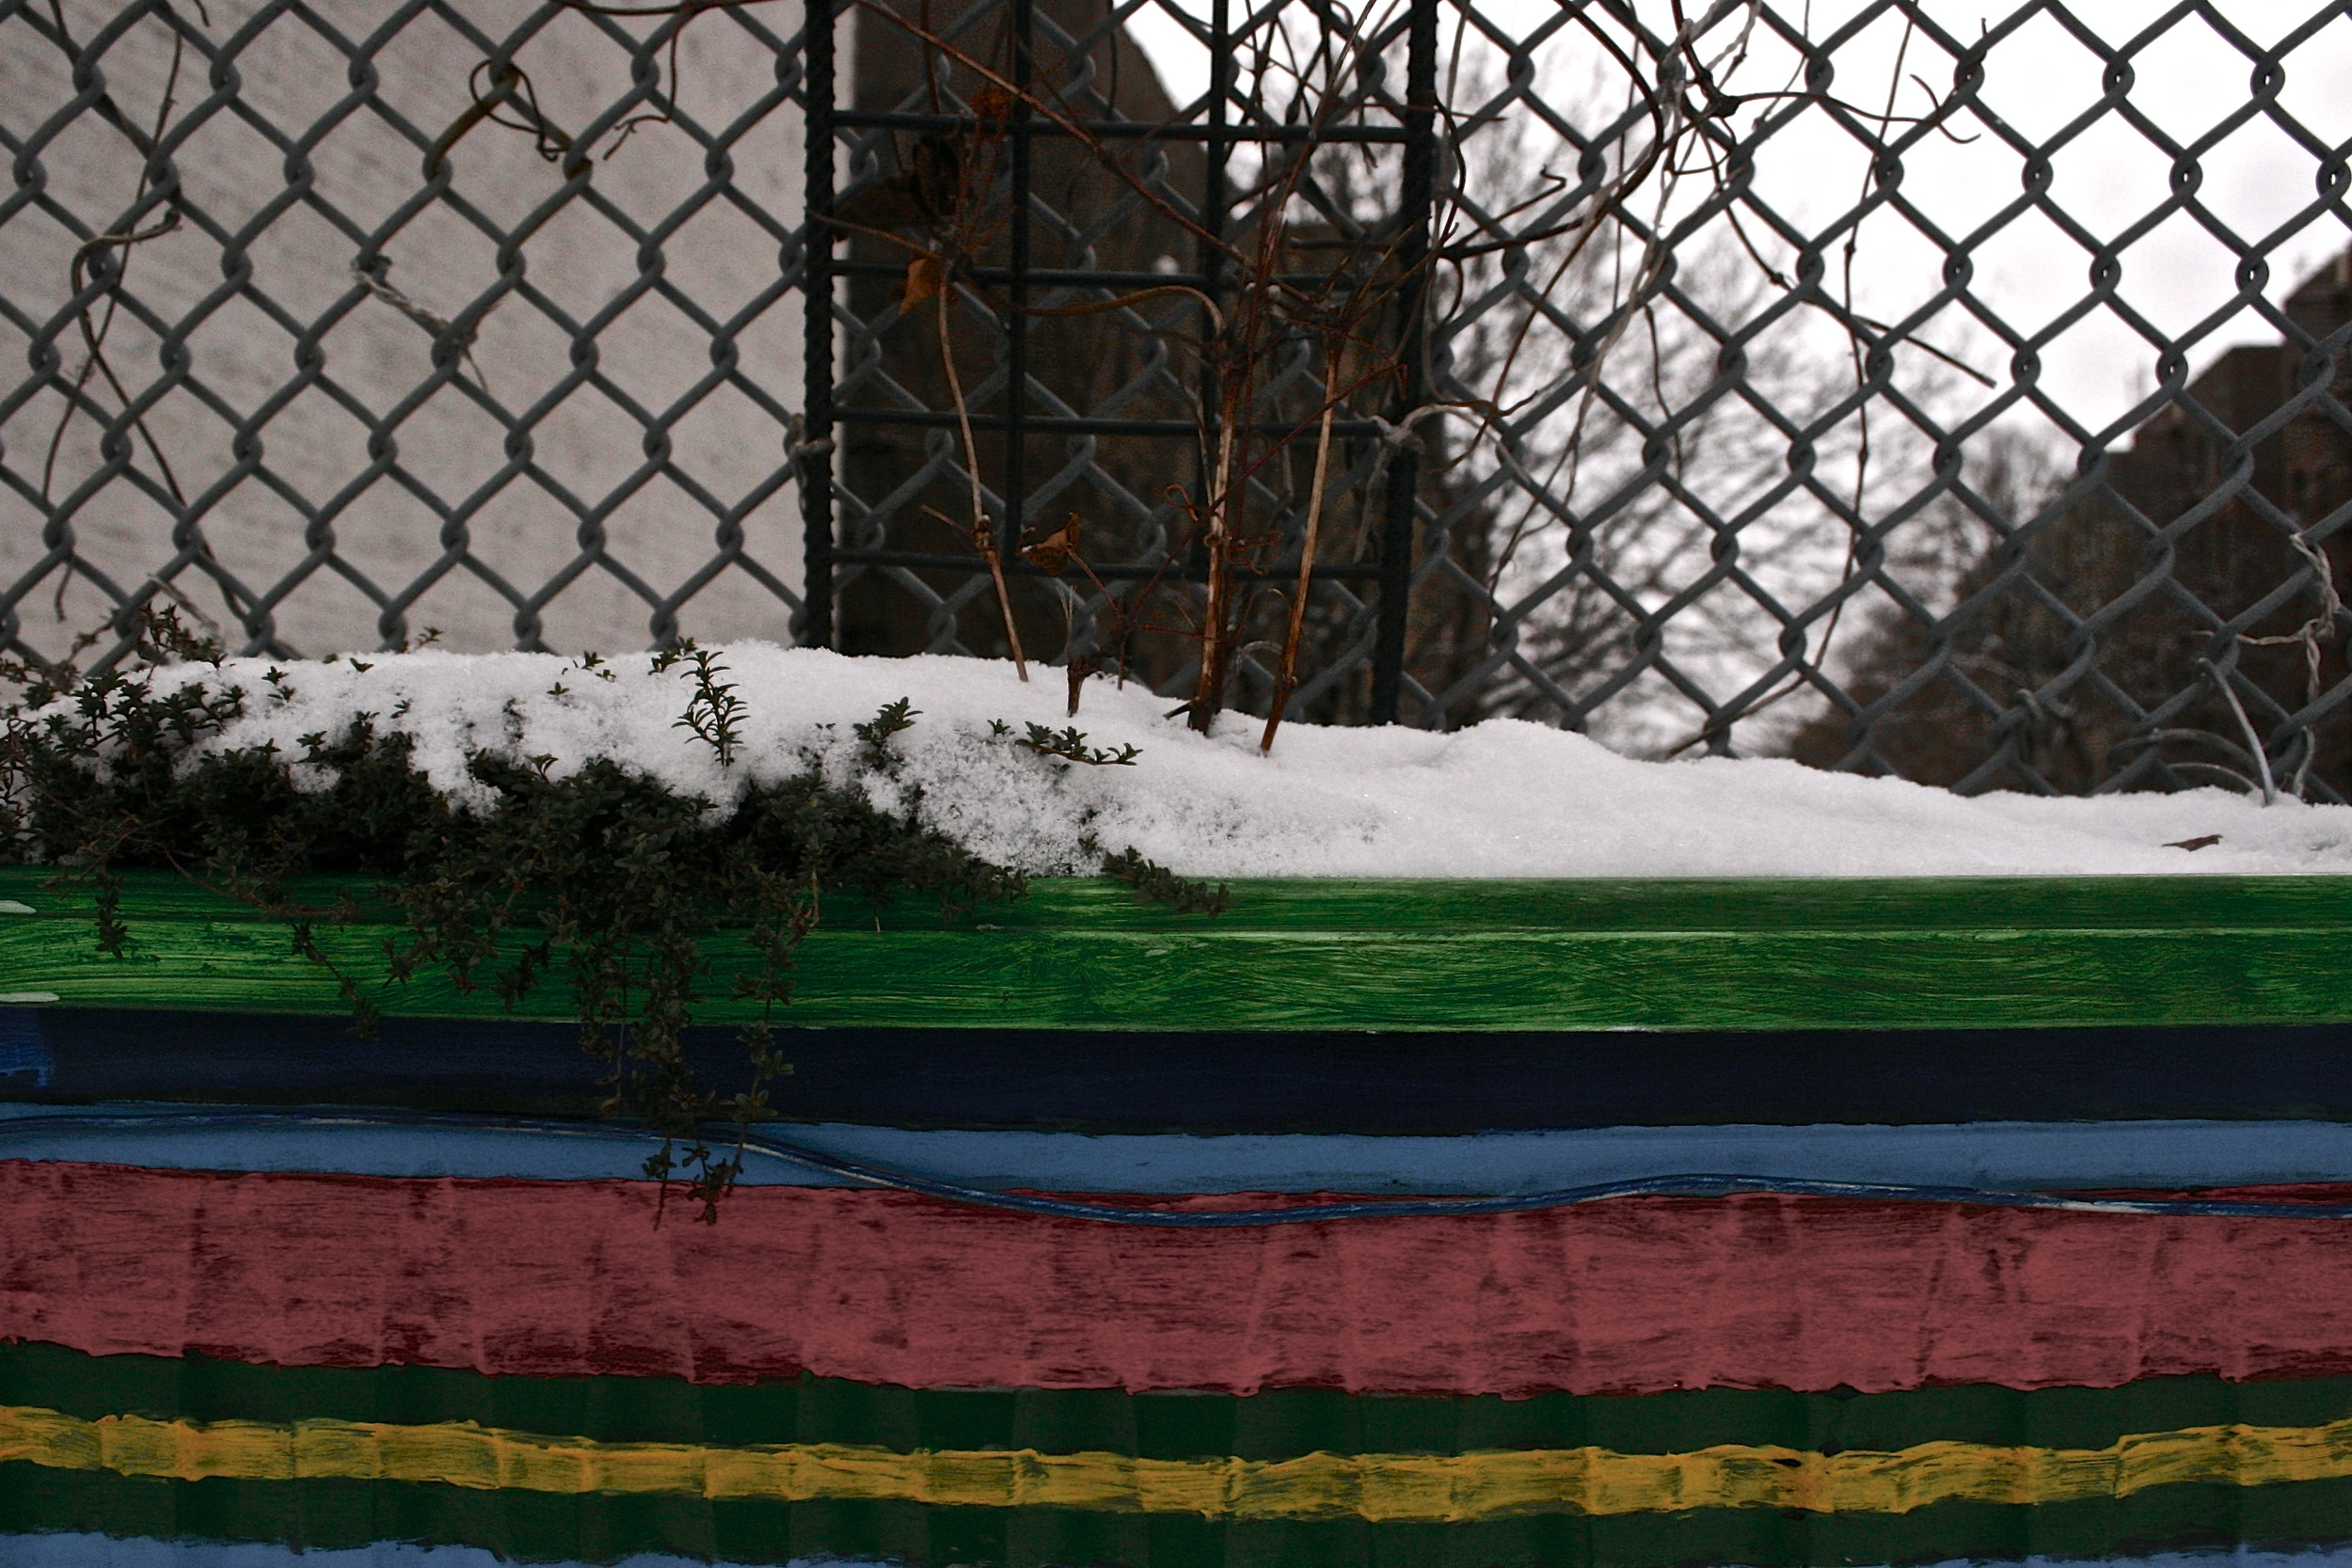 planter-in-snow-nyc-webecurry.jpg